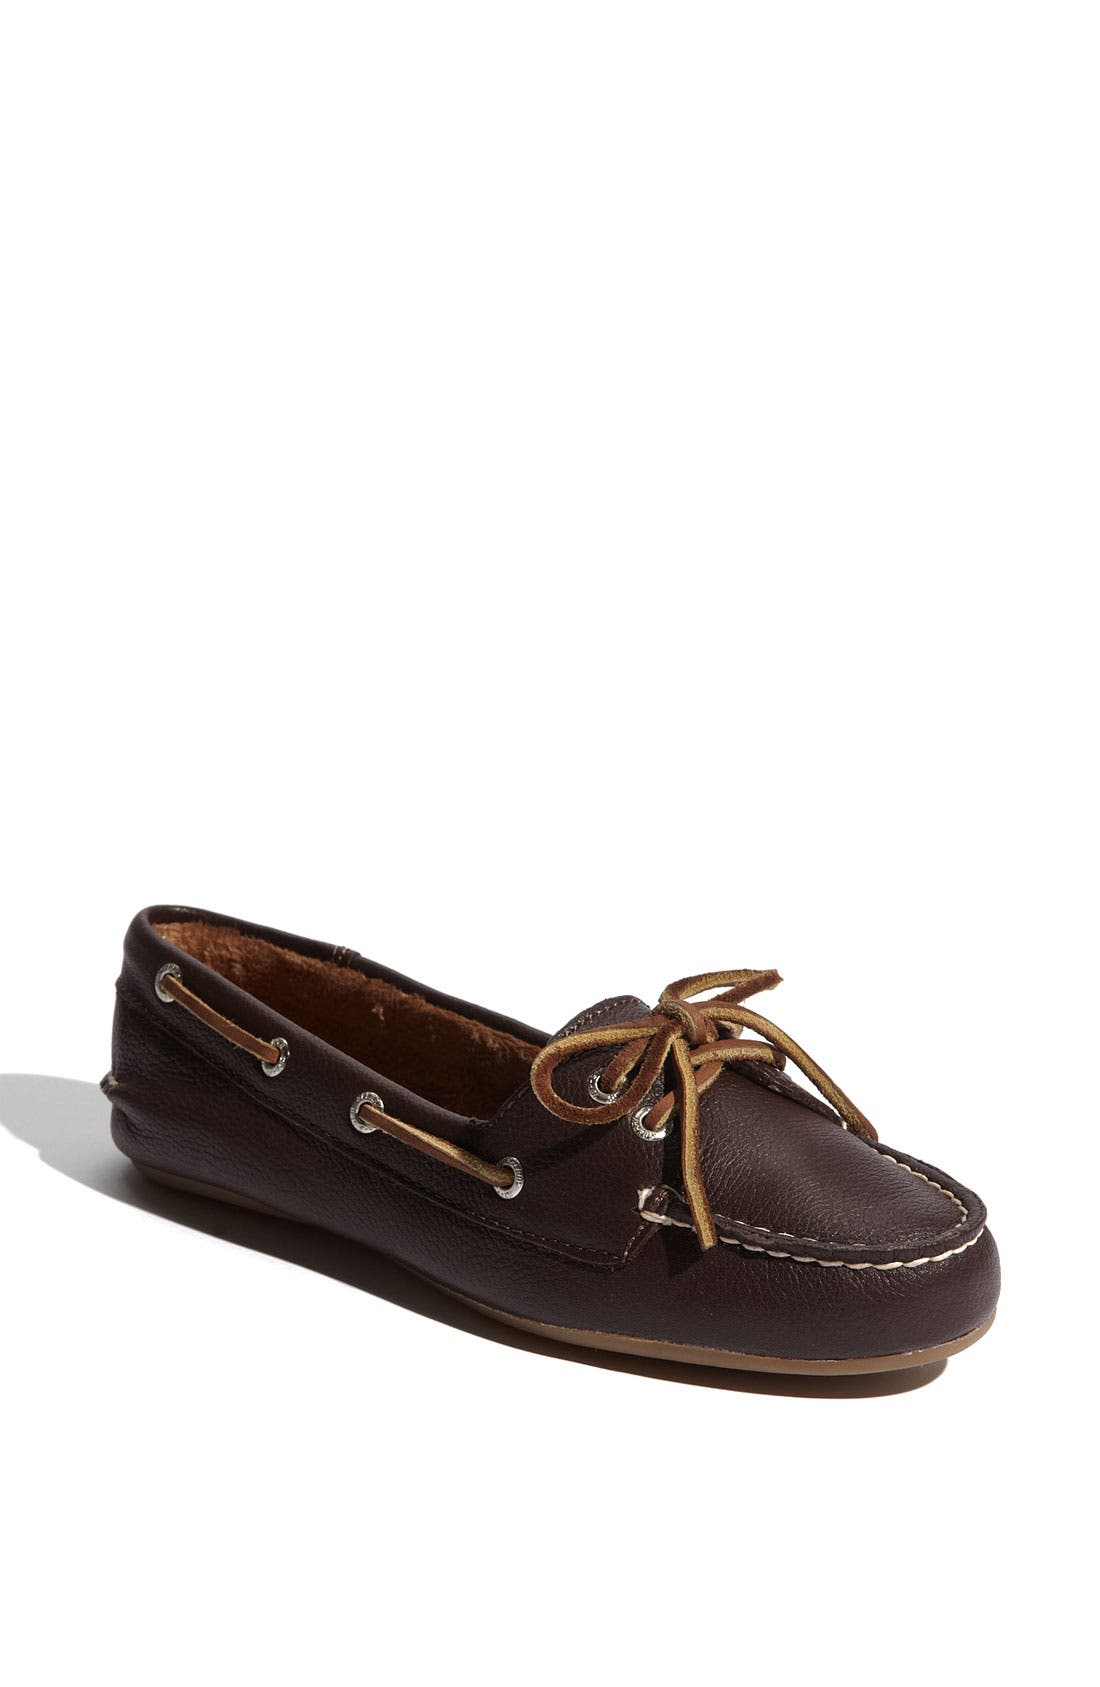 Main Image - Sperry Top-Sider® 'Skiff' Moccasin Slip-On